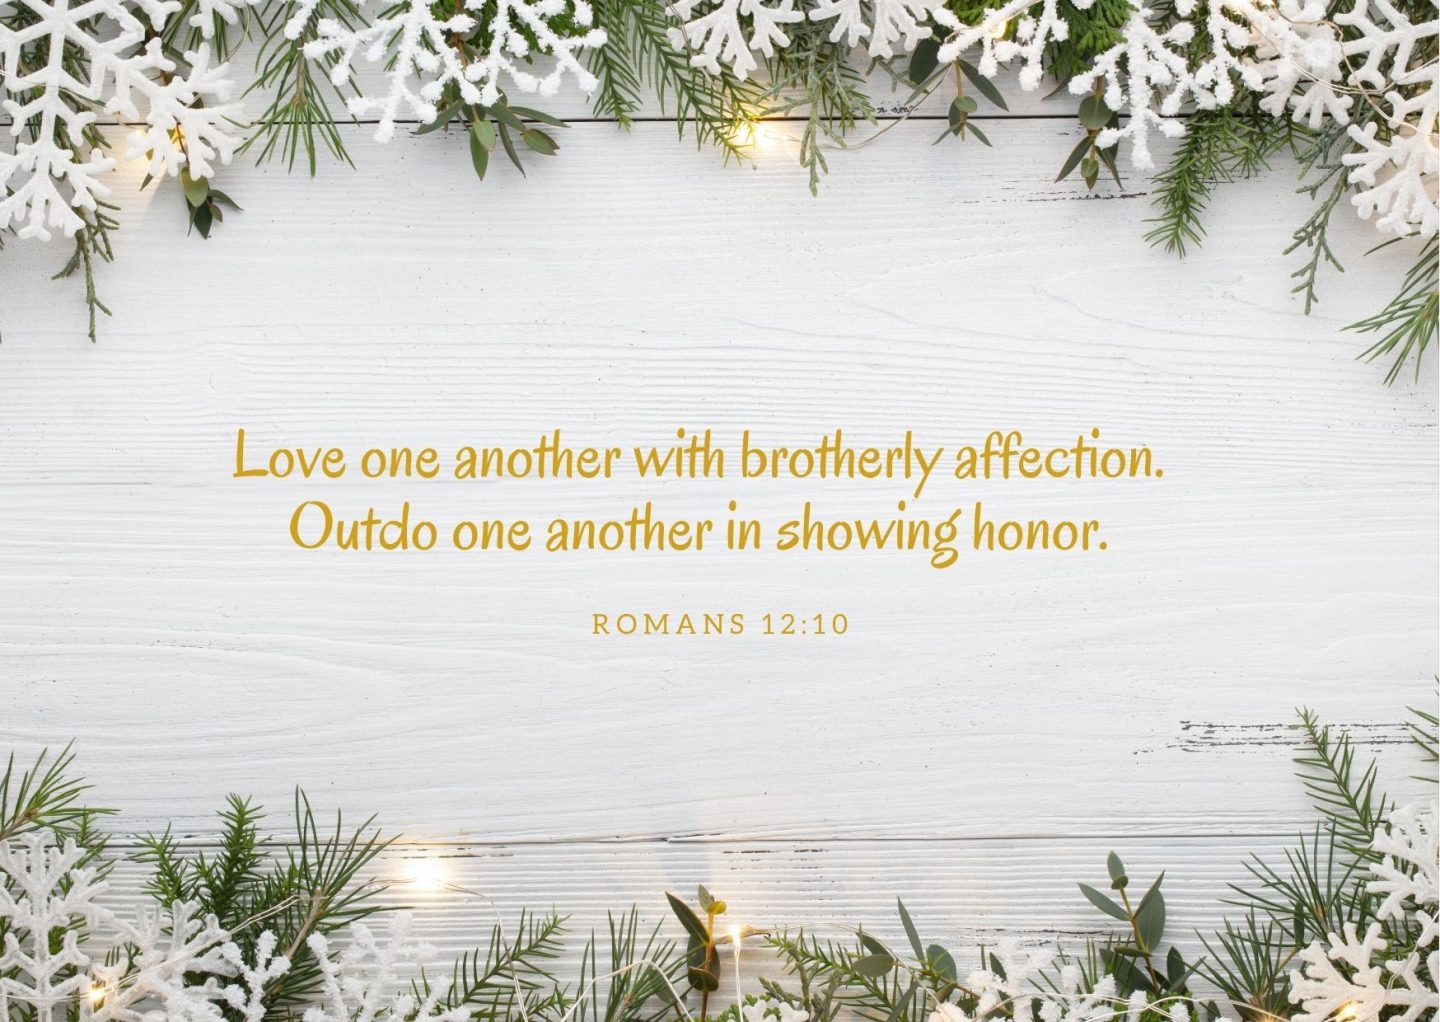 Love one another with brotherly affection. Outdo one another in showing honor. Romans 12:10